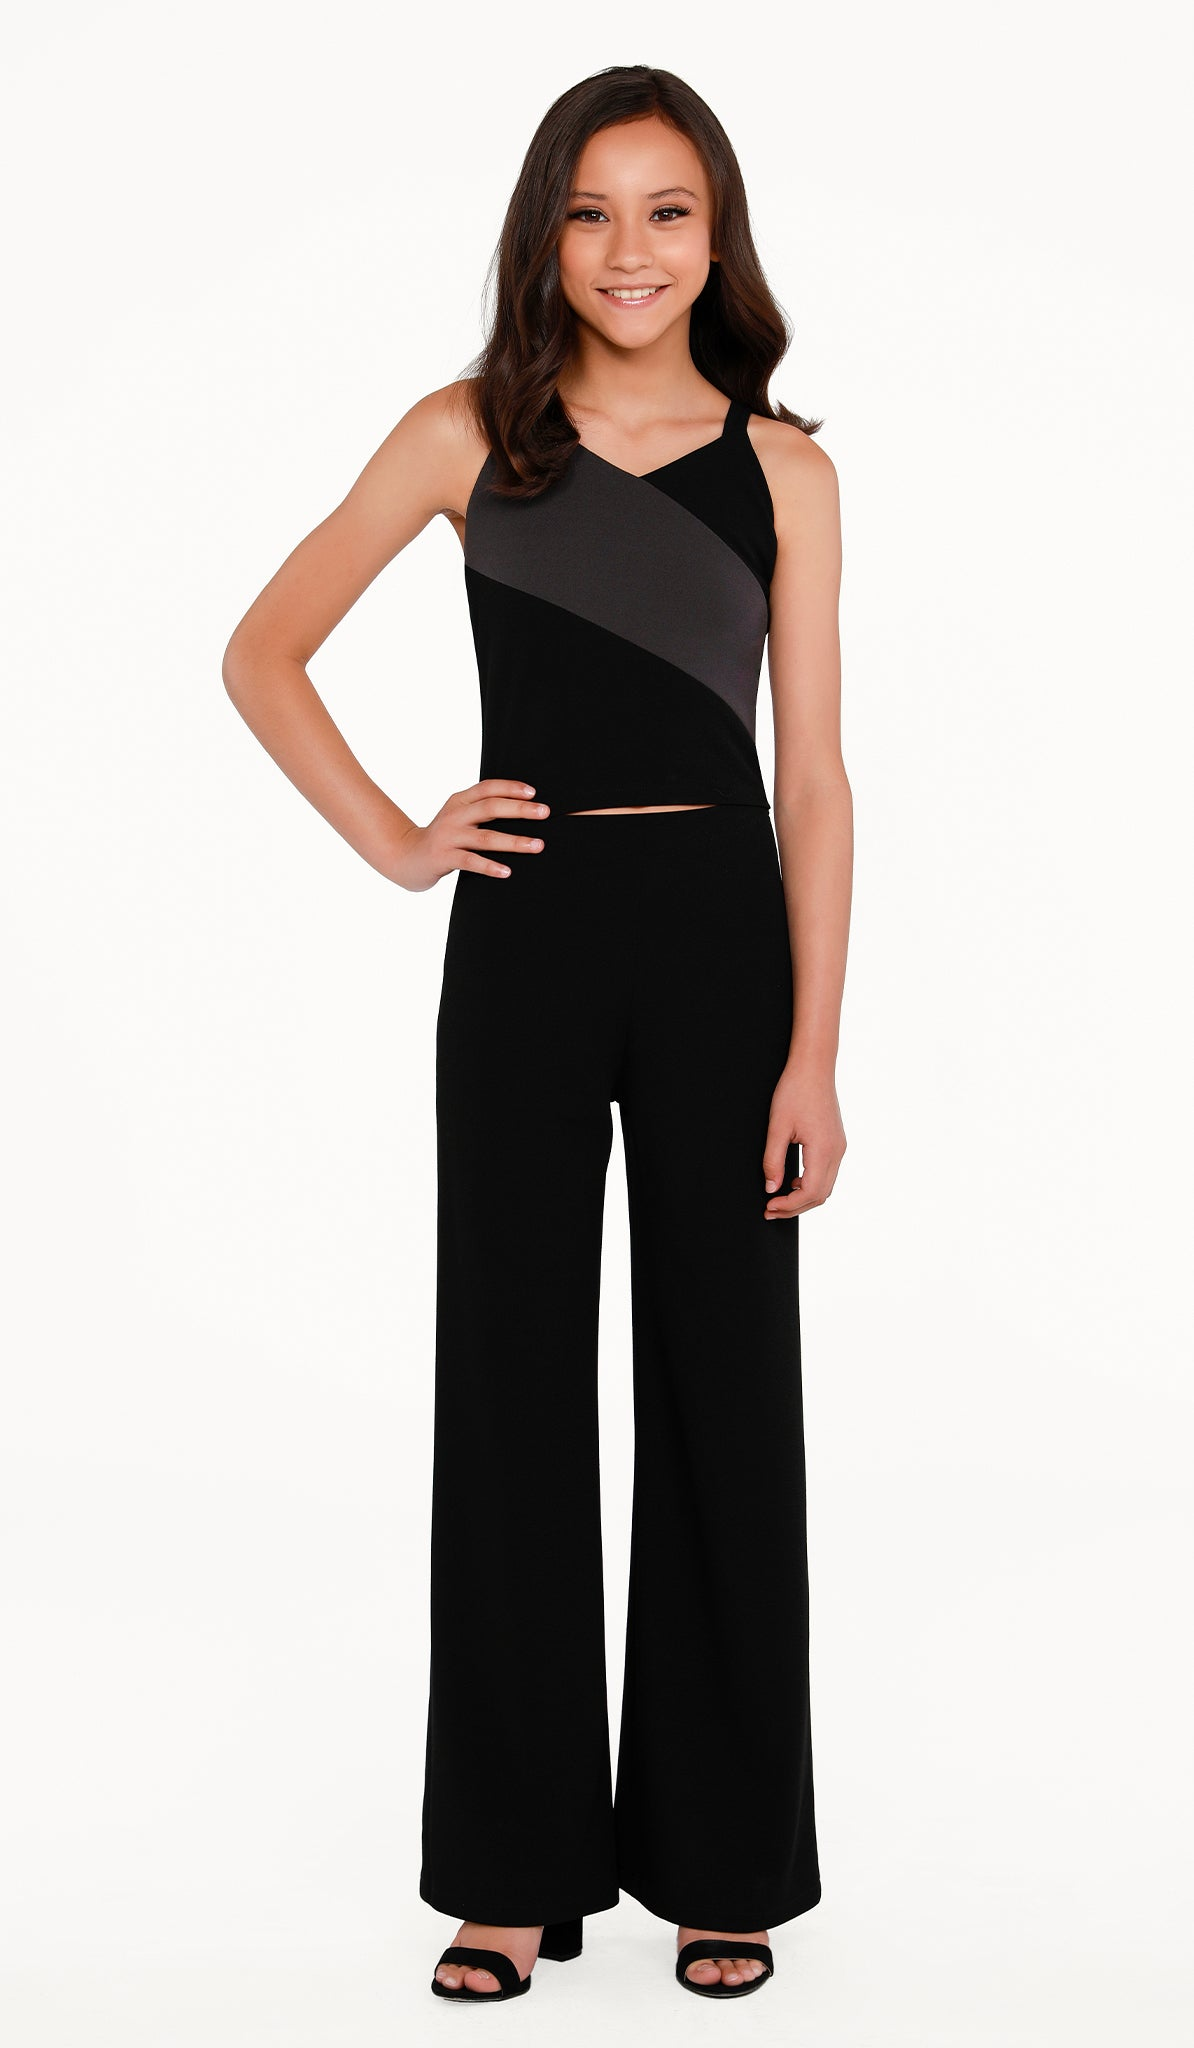 The Sally Miller Diagonal Top Pant Set | Black stretch crepe pant set with color block top